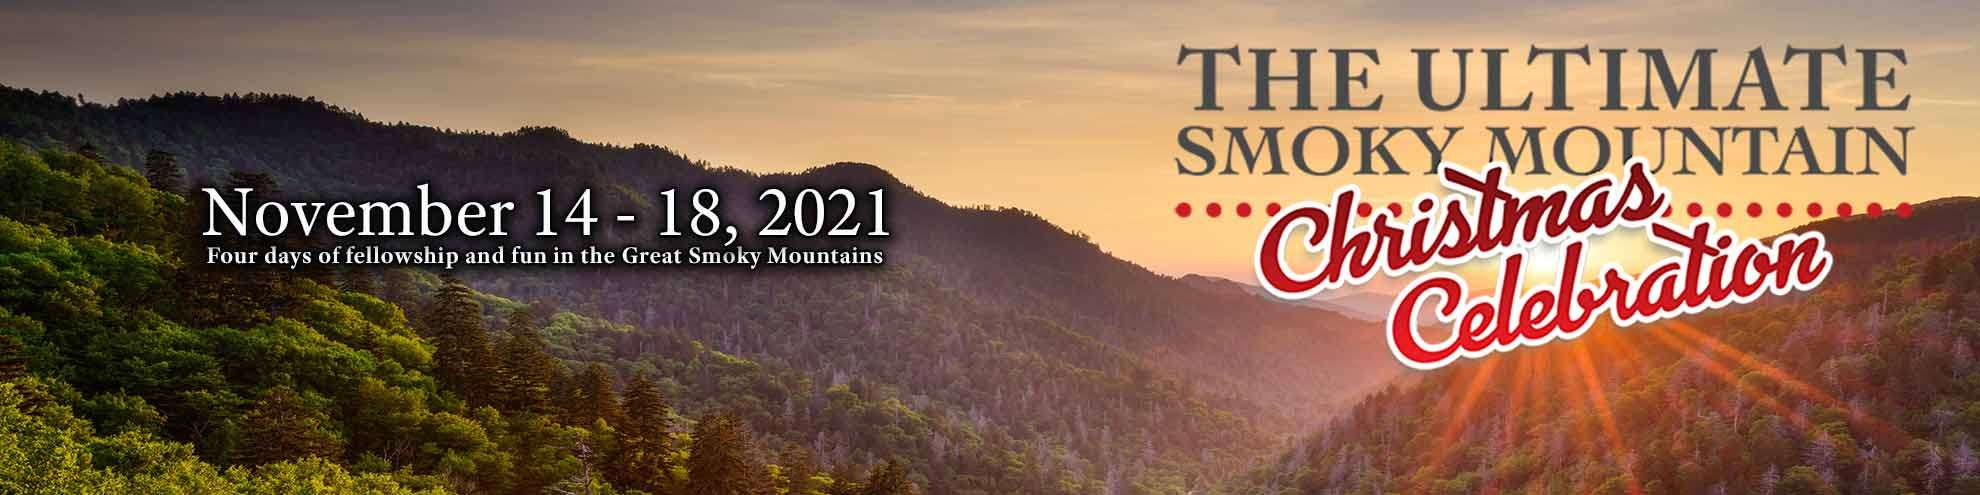 ULTIMATE SMOKY MOUNTAIN CHRISTMAS - CONFERENCE ONLY